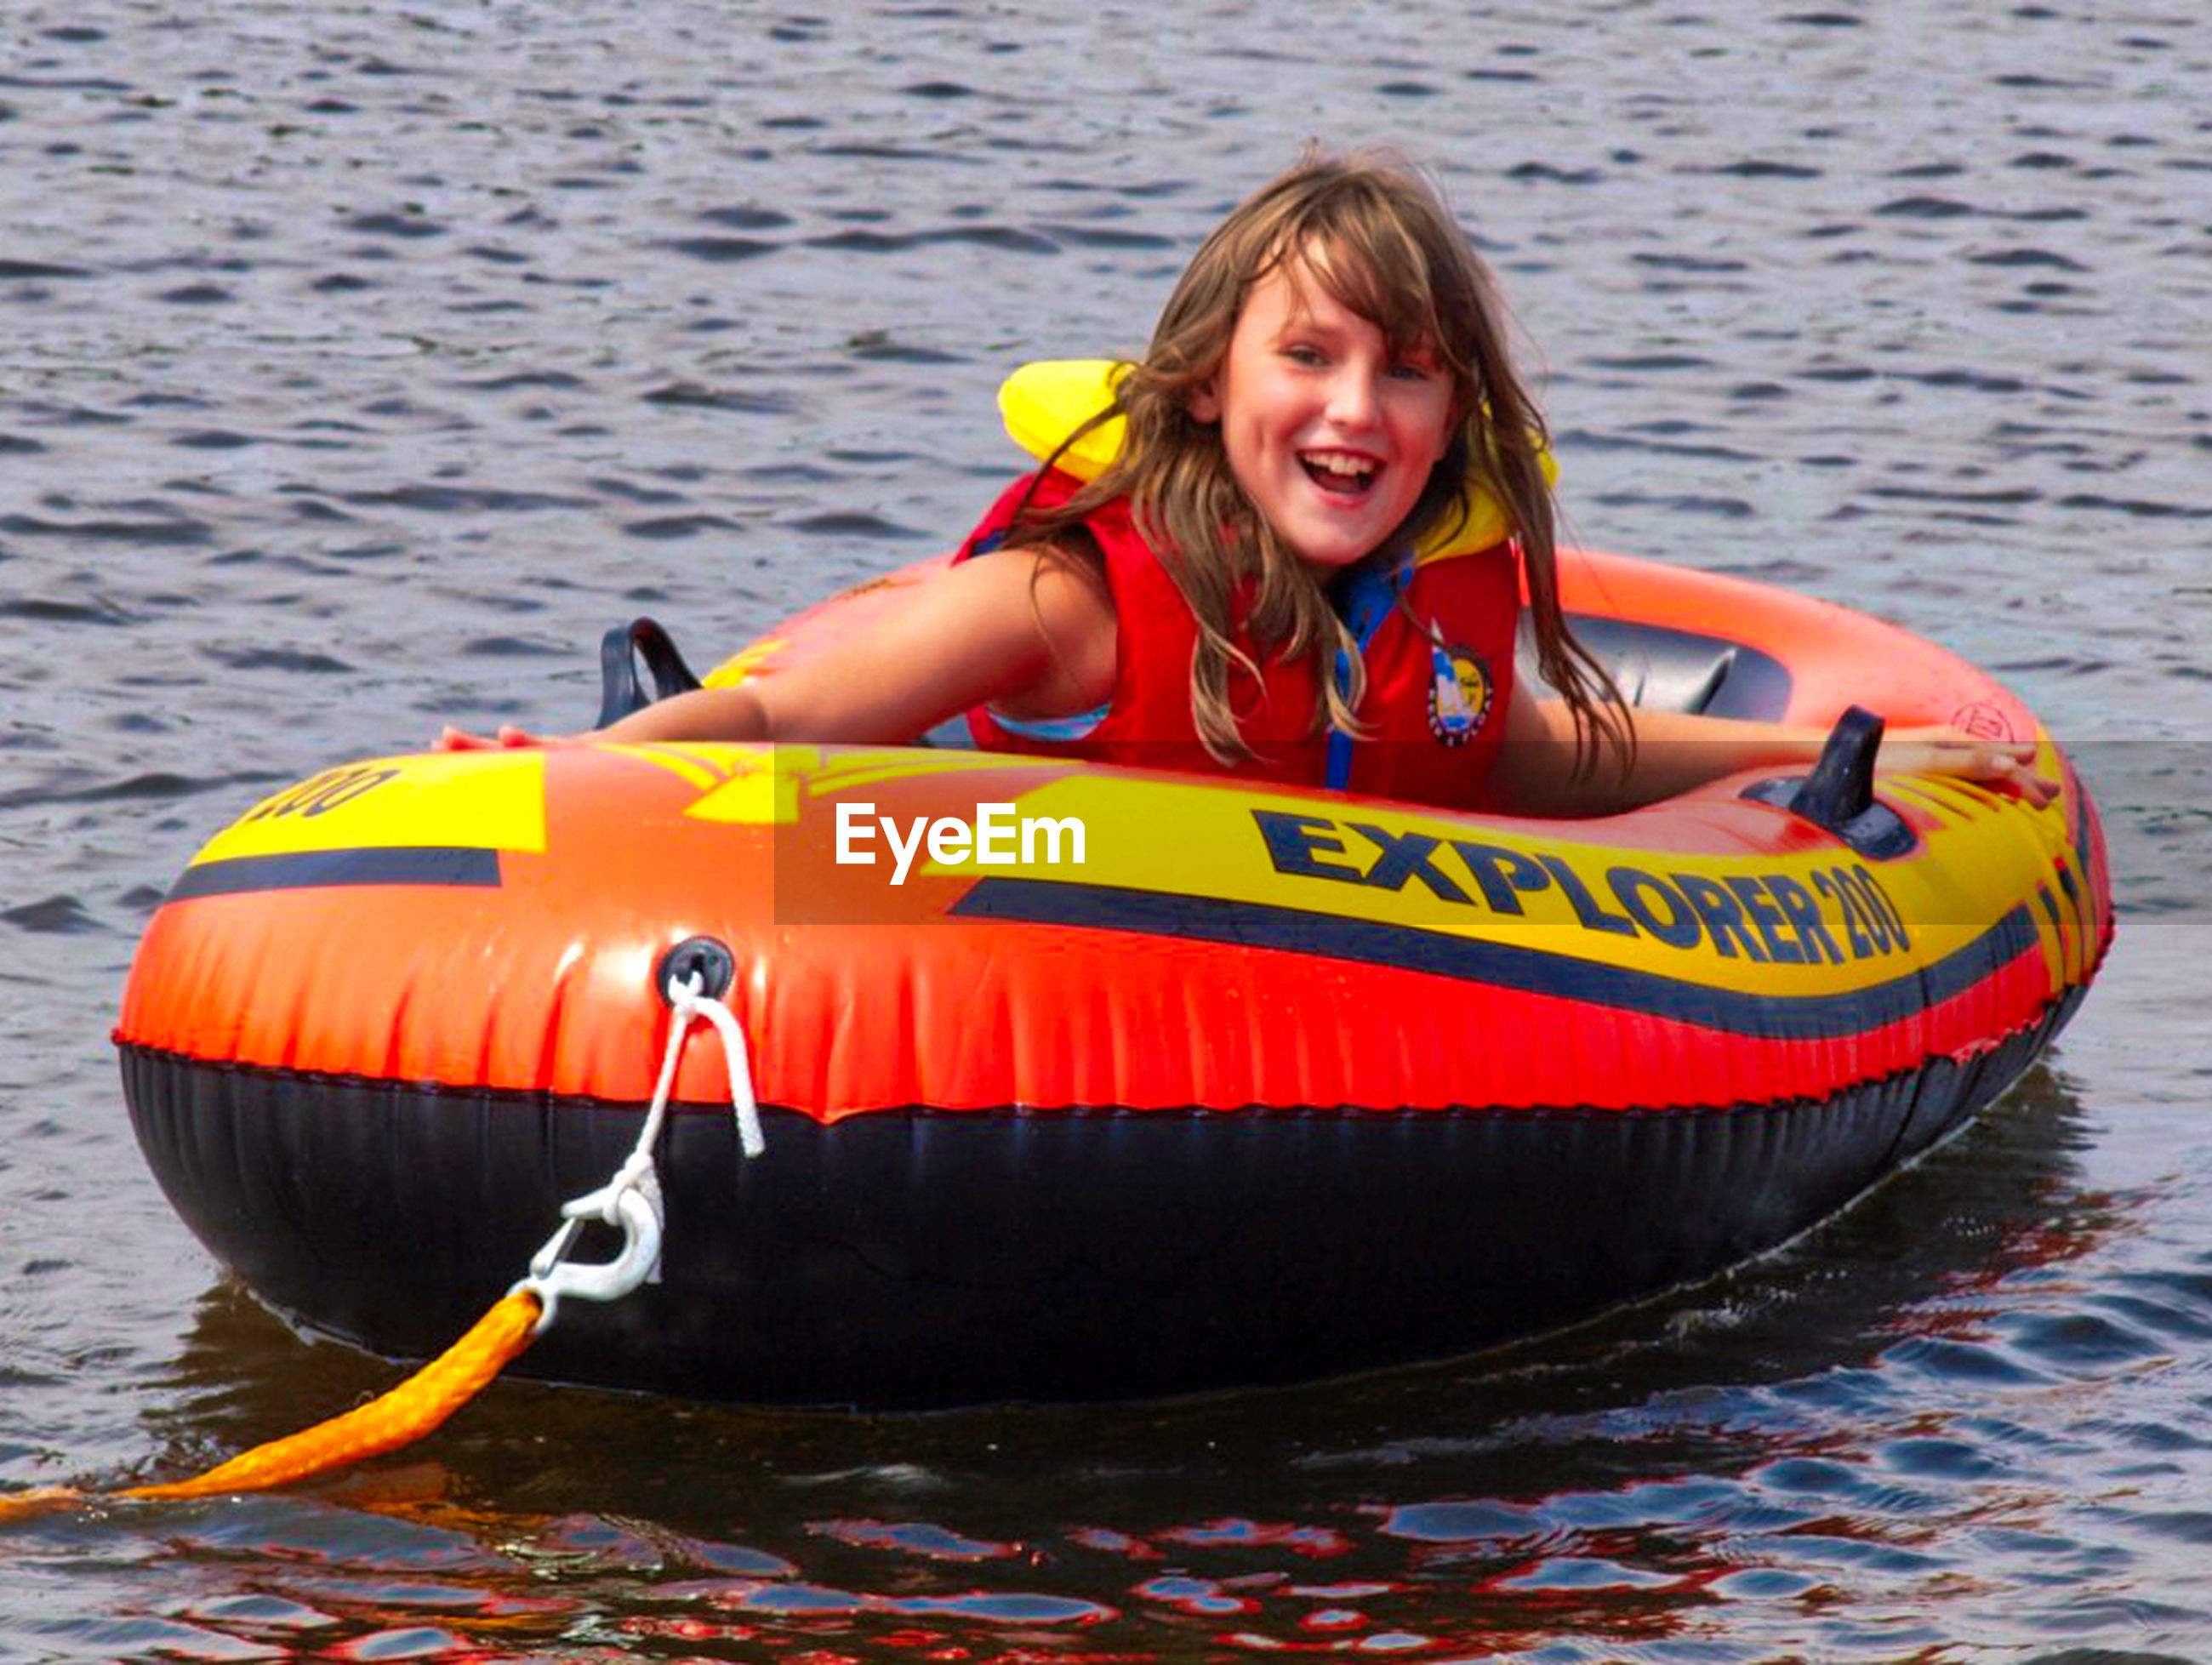 water, life jacket, nautical vessel, oar, smiling, kayak, looking at camera, portrait, one person, leisure activity, floating on water, day, yellow, happiness, outdoors, blond hair, real people, lake, adventure, inflatable raft, young adult, nature, adult, adults only, people